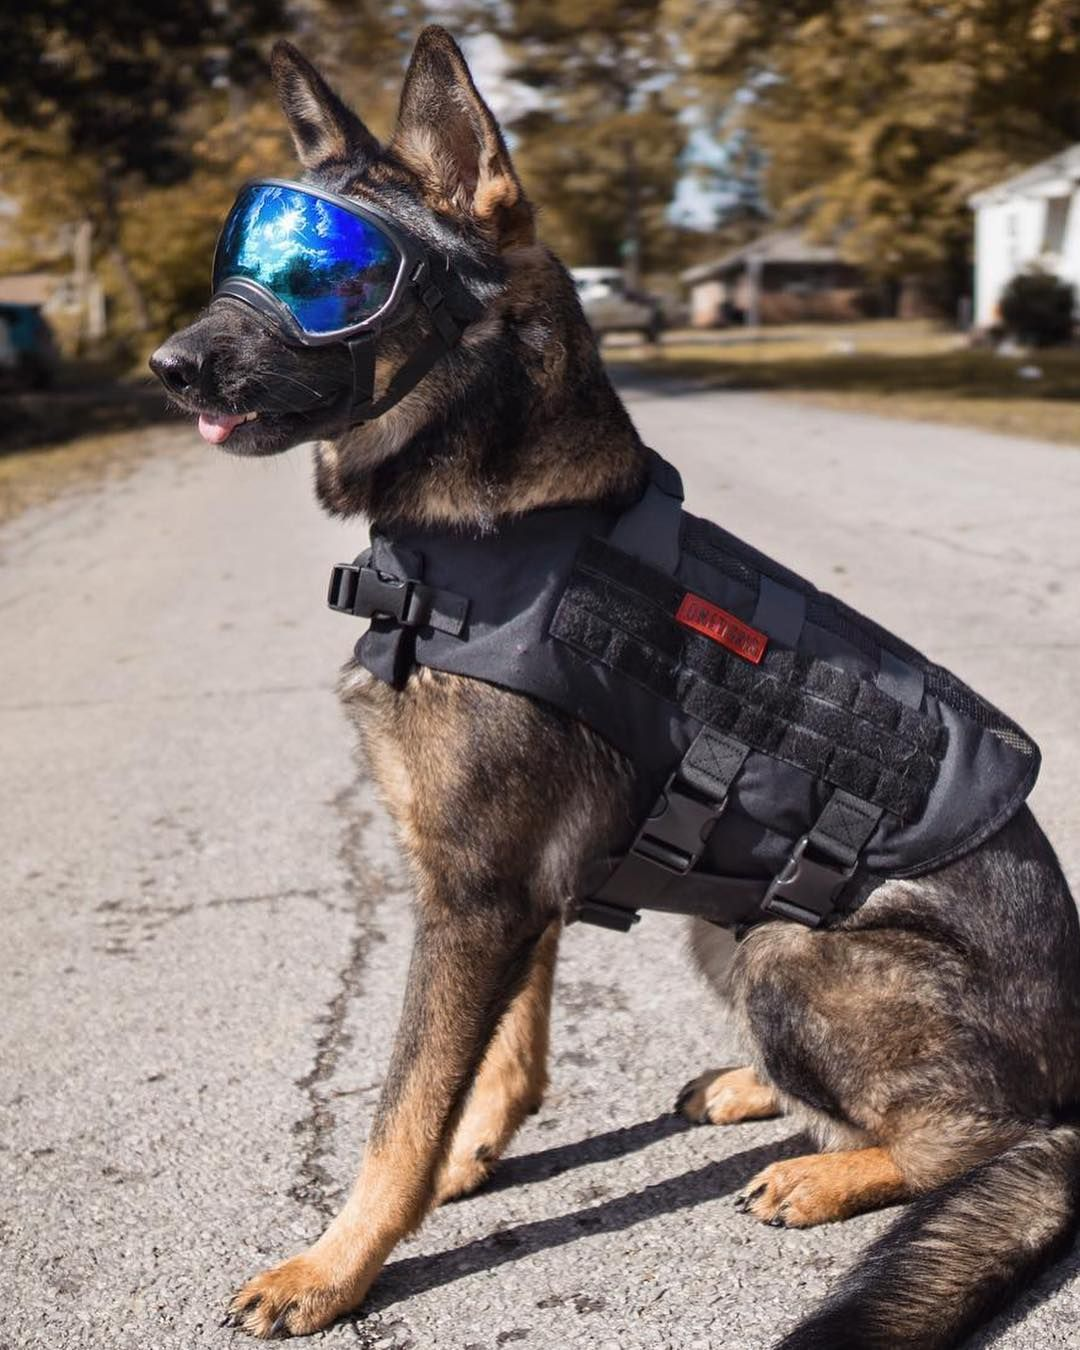 I M The Coolest K9 On The Block With My New Submariner Dog Harness